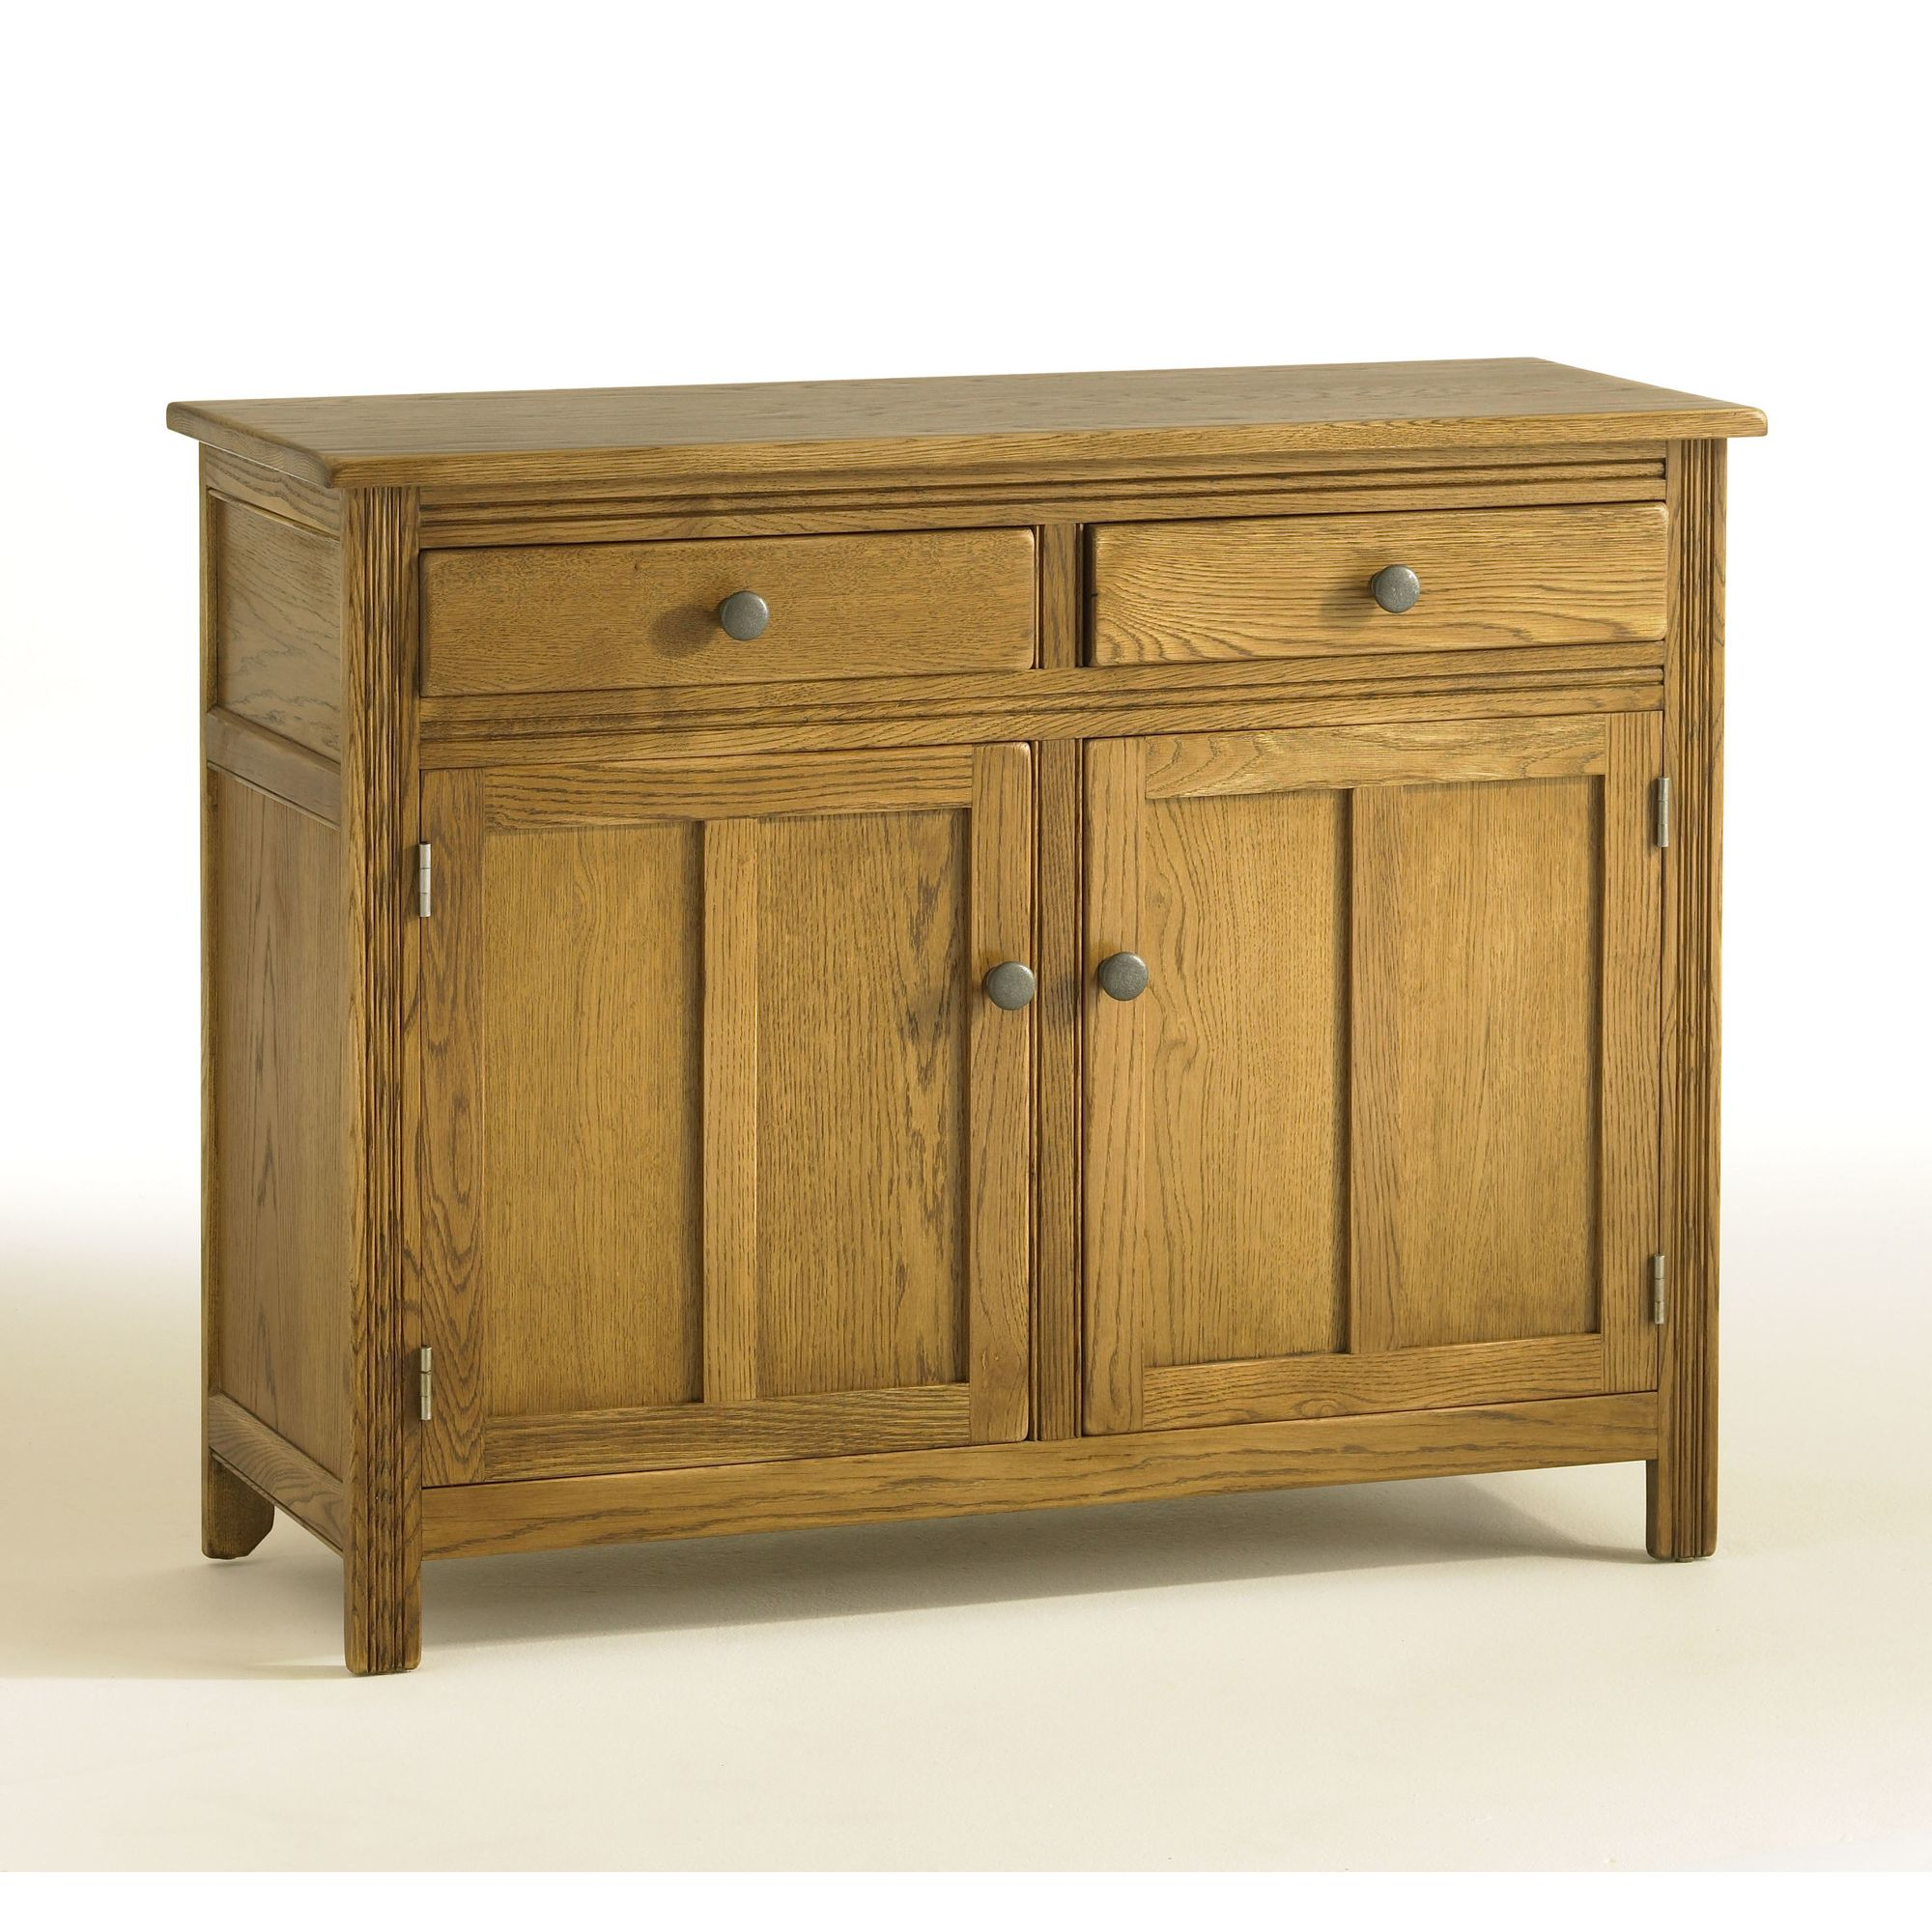 Old Charm Hertford 2 Door Sideboard - Natural at Tesco Direct